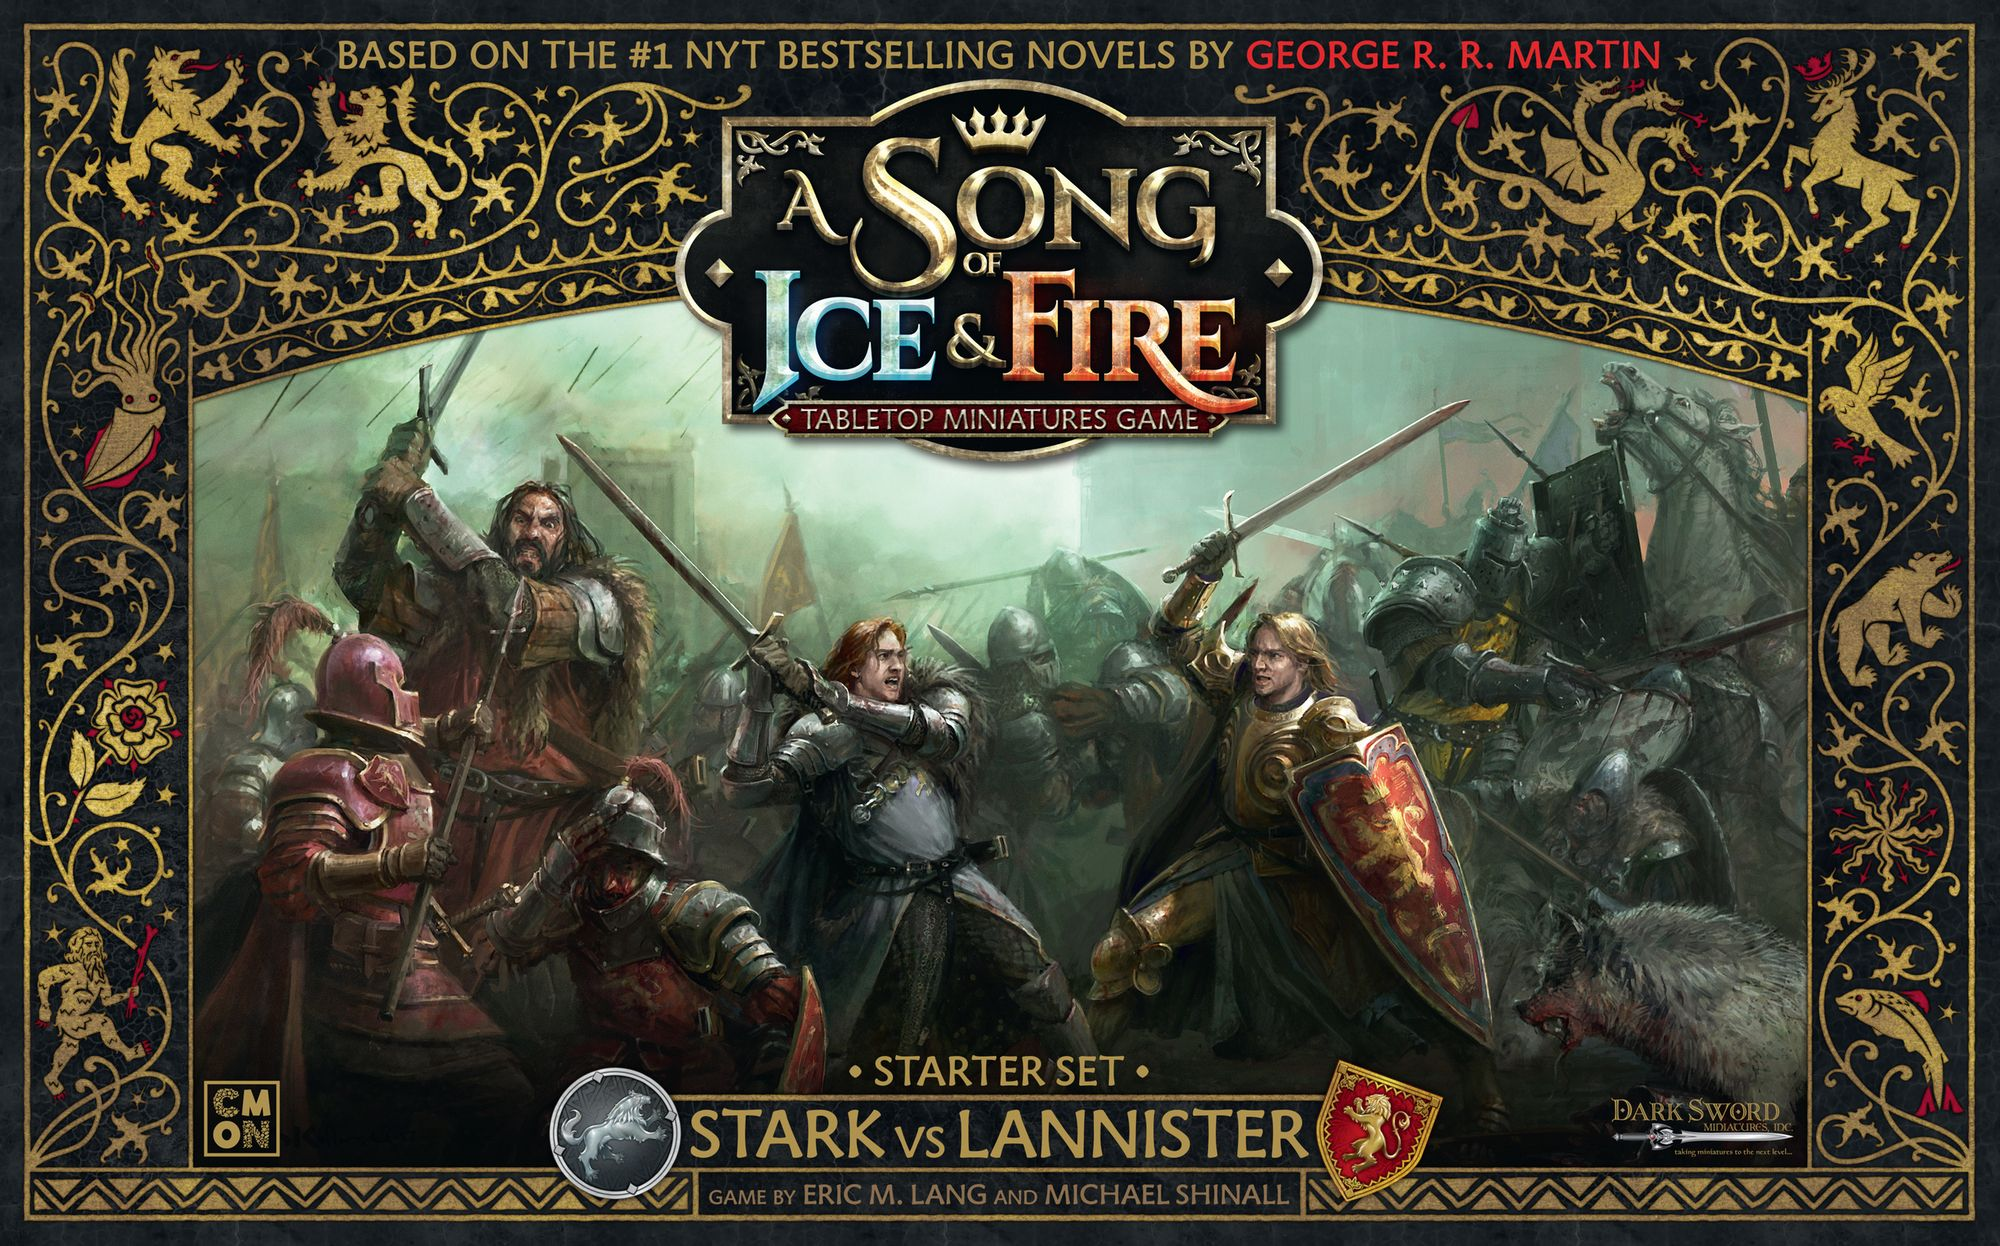 Main image for A Song of Ice & Fire: Tabletop Miniatures Game – Stark vs Lannister Starter Set board game